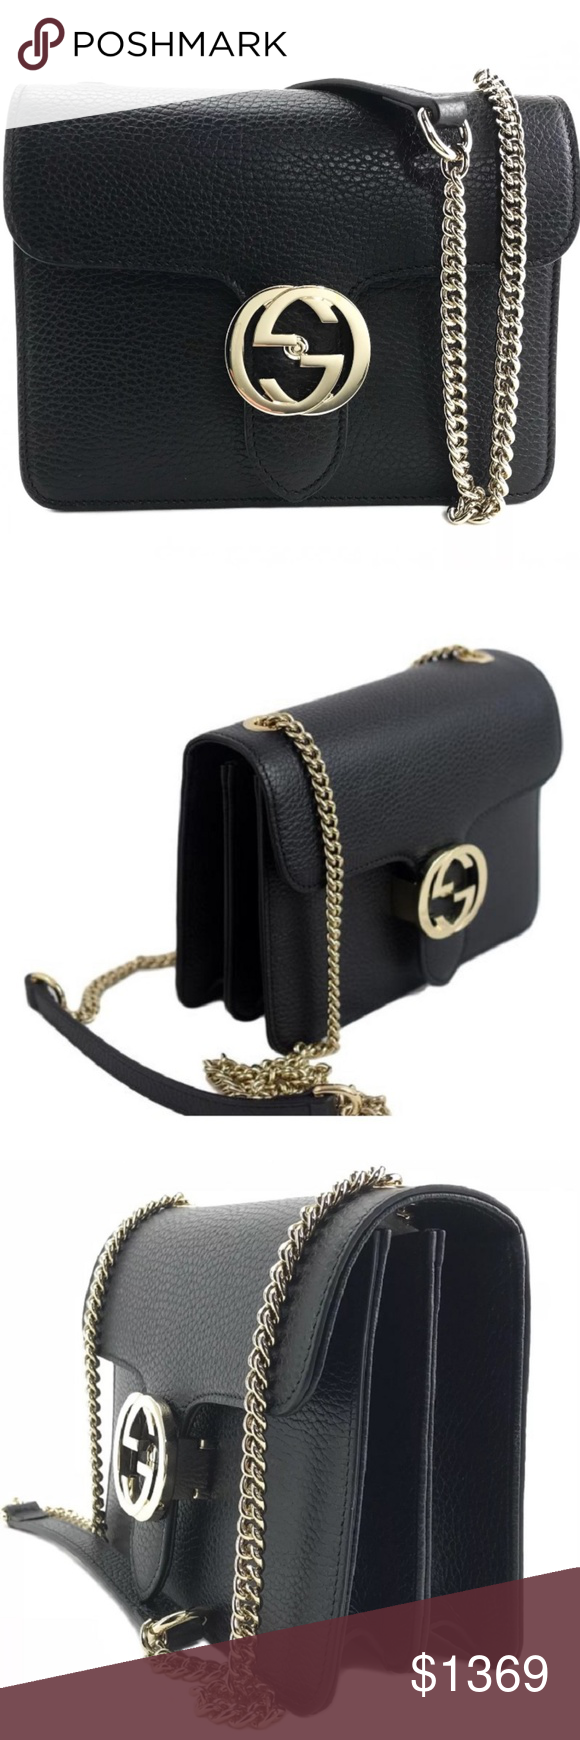 0063bb04e248 Gucci GG Closure Leather Chain Crossbody, #510304 * Black Textured Leather  Hard Exterior *